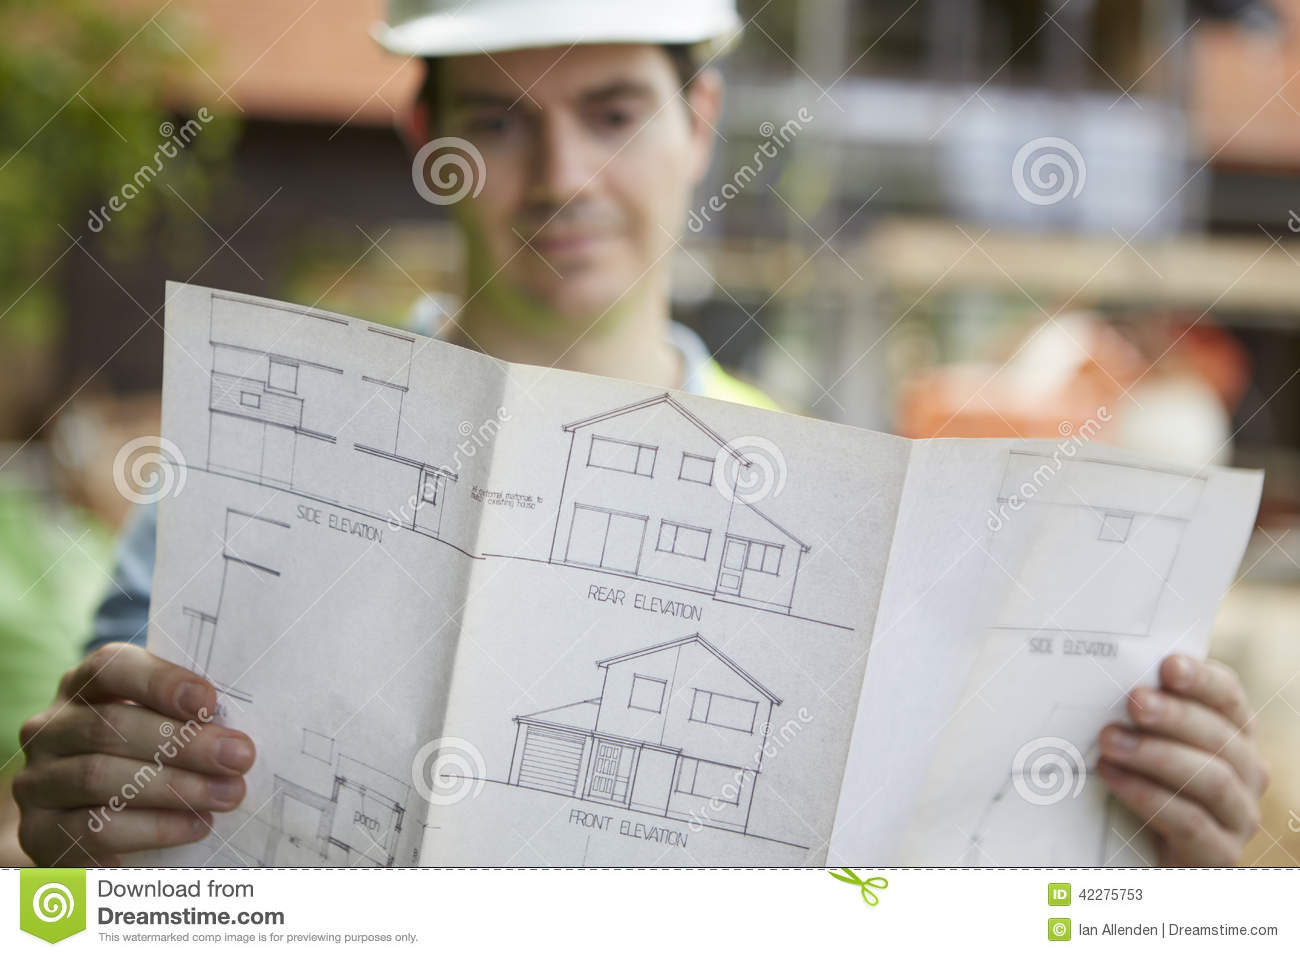 onstruction Worker On Building Site Looking t House Plans Stock ... - ^